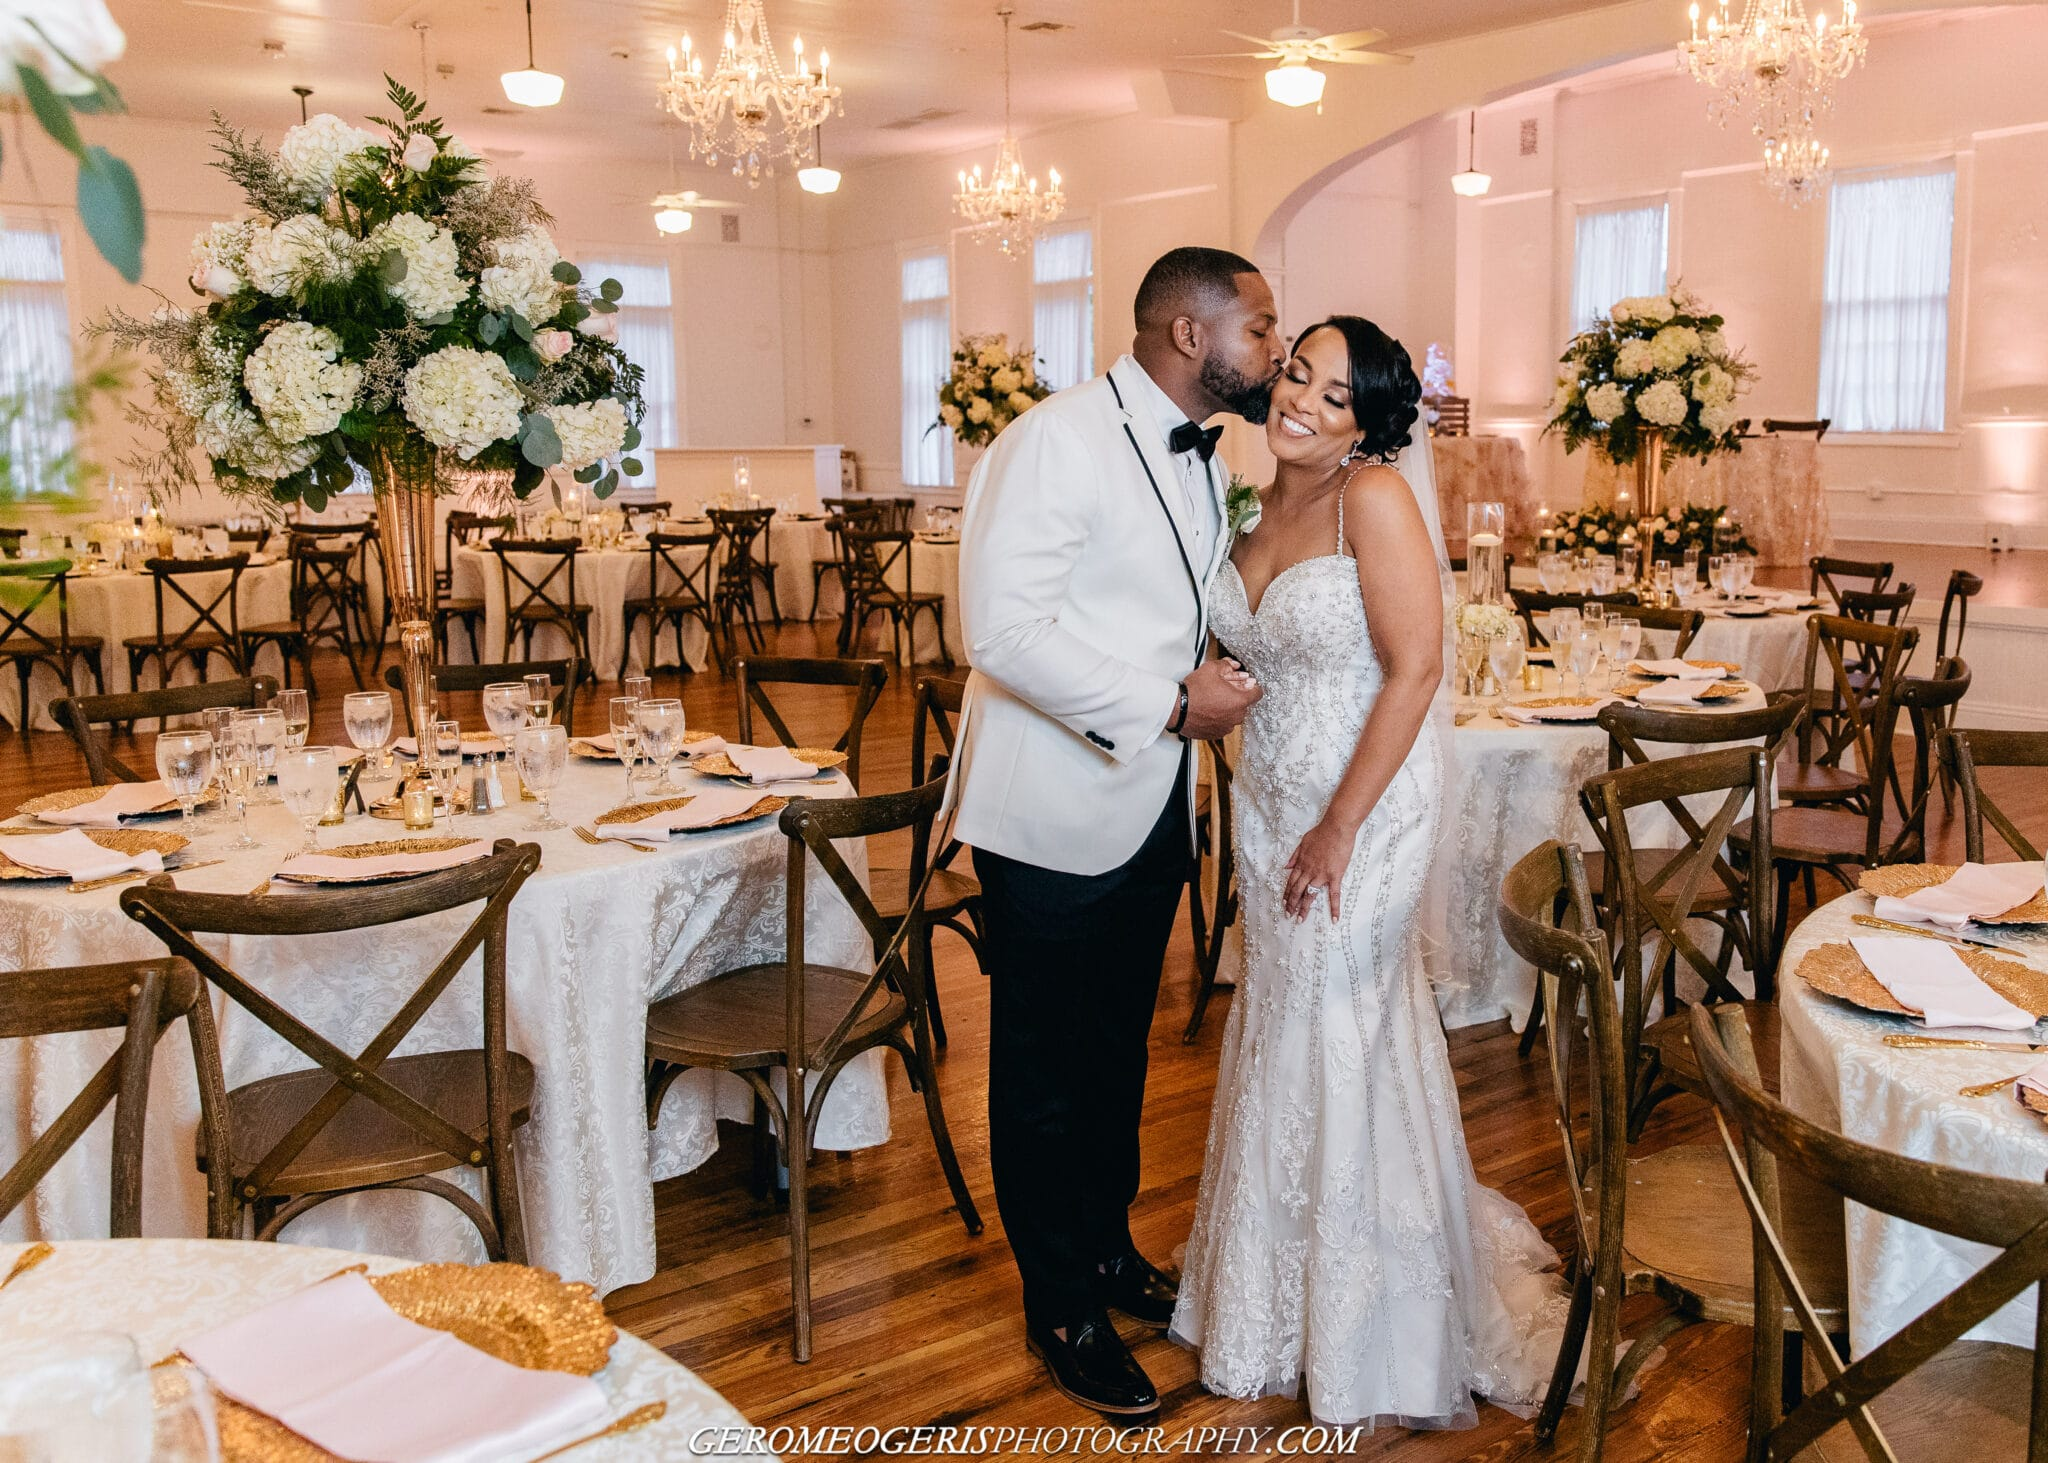 Venue 1902 at Preservation Hall, bride and groom in center of dining room